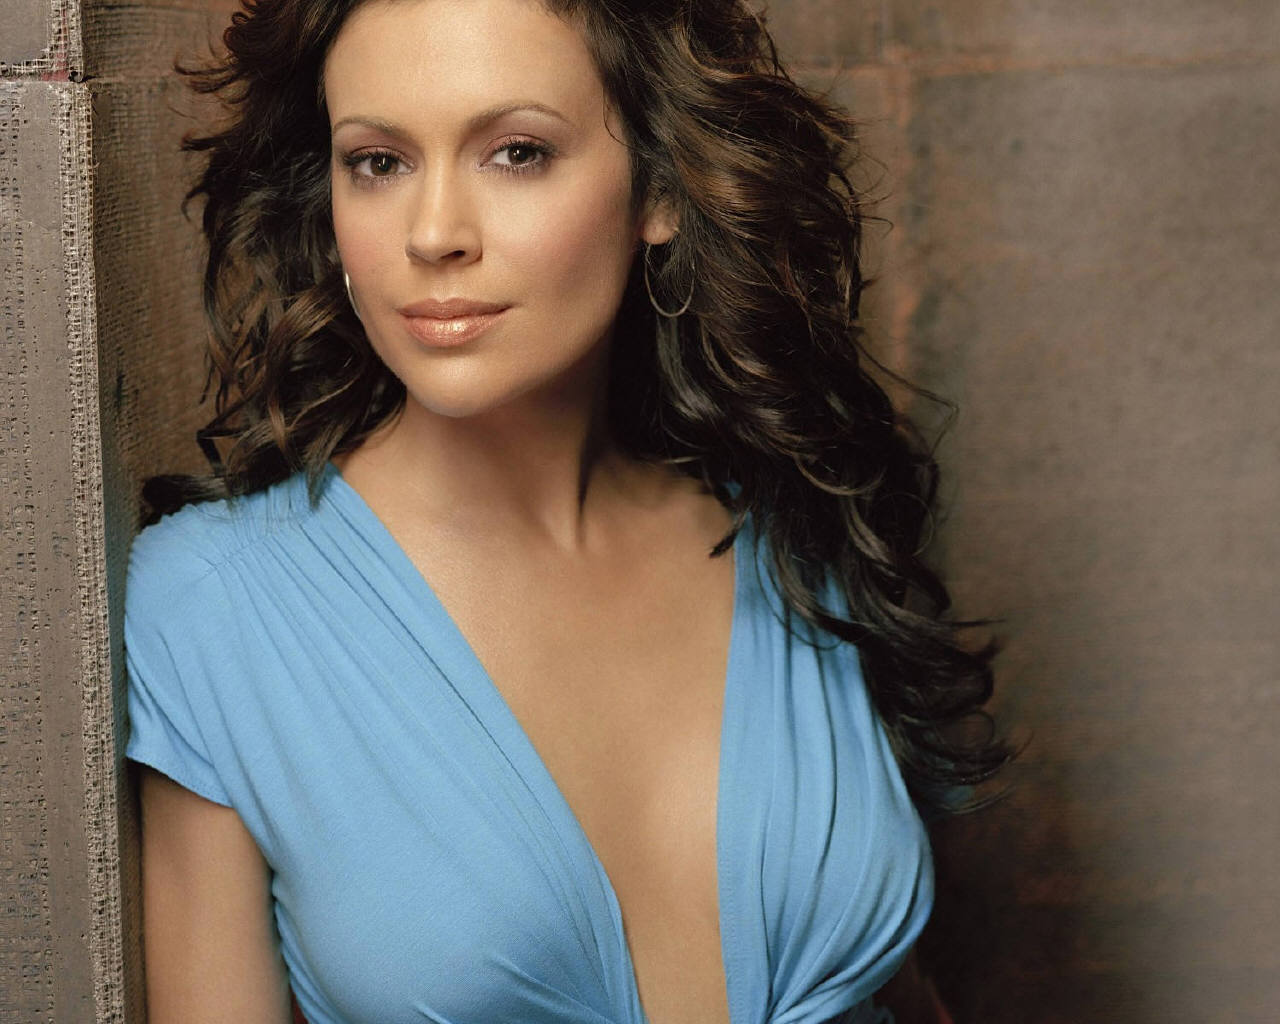 alyssa milano celebrities - photo #46